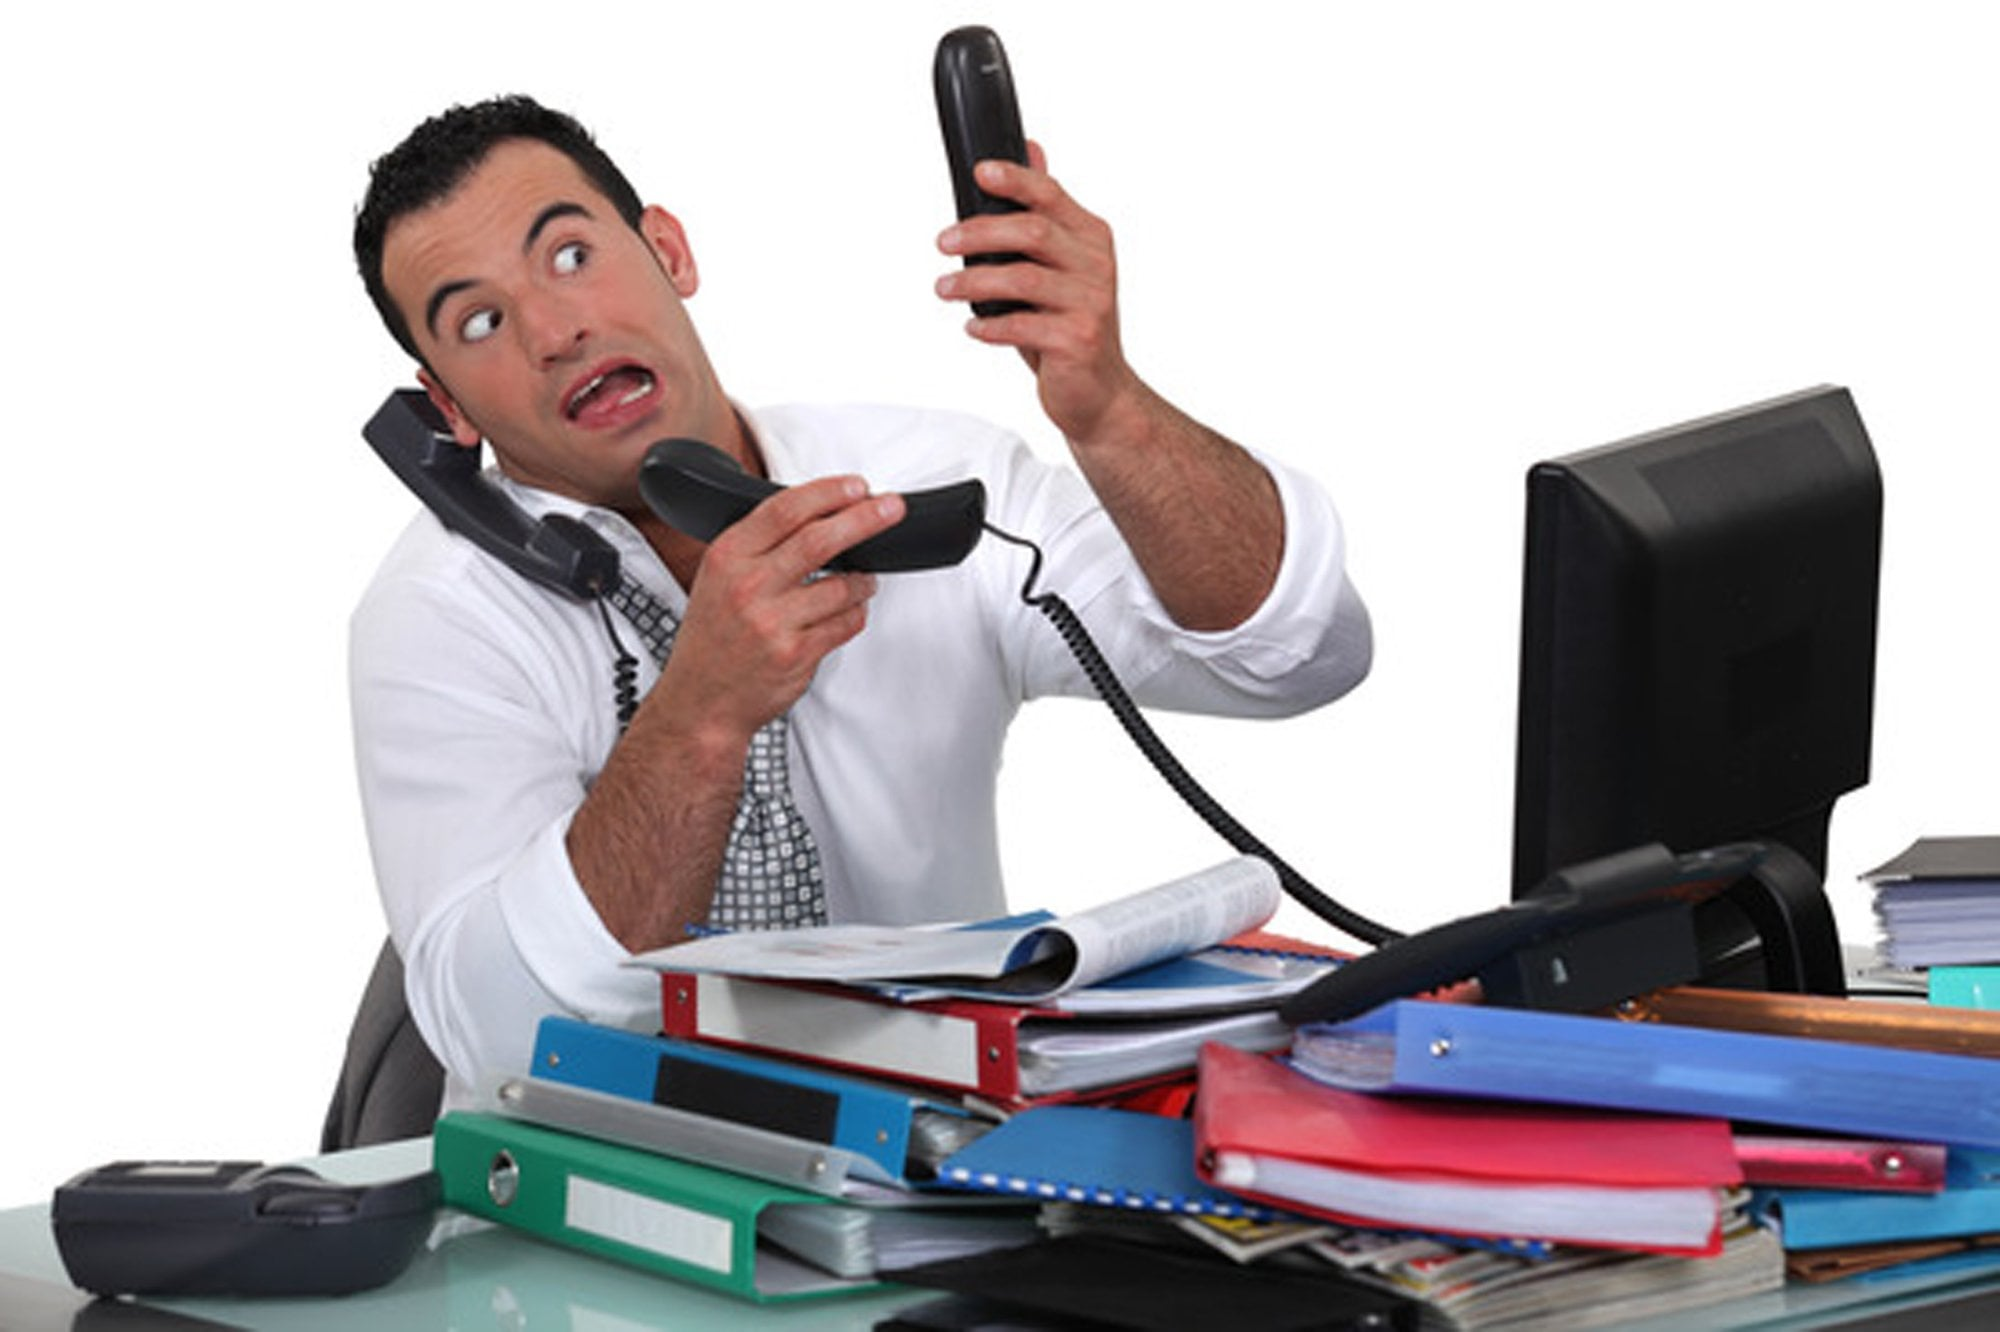 Handling business phone calls the right way | The James